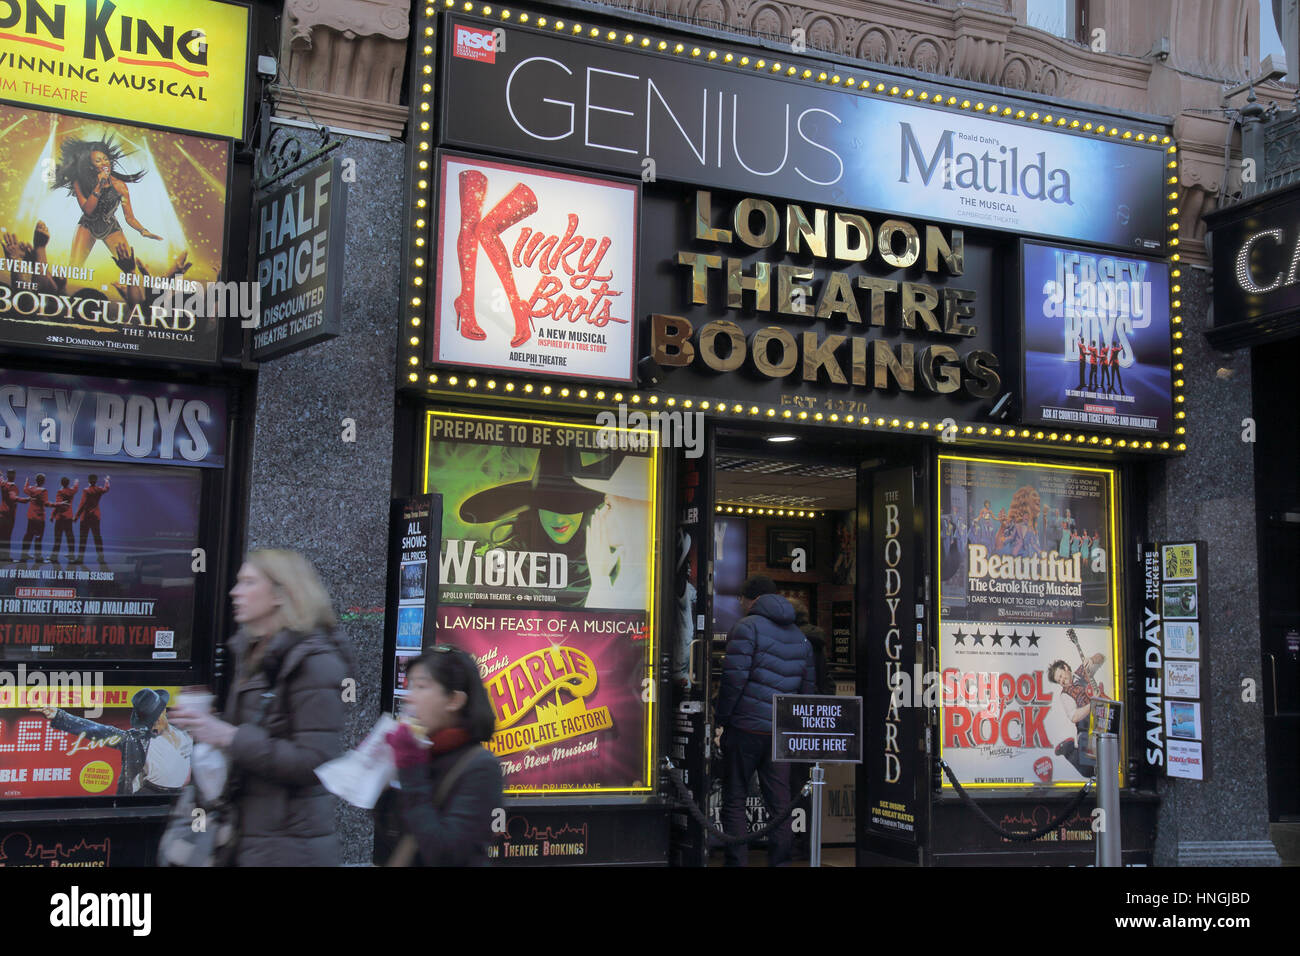 theatre ticket booth london - Stock Image